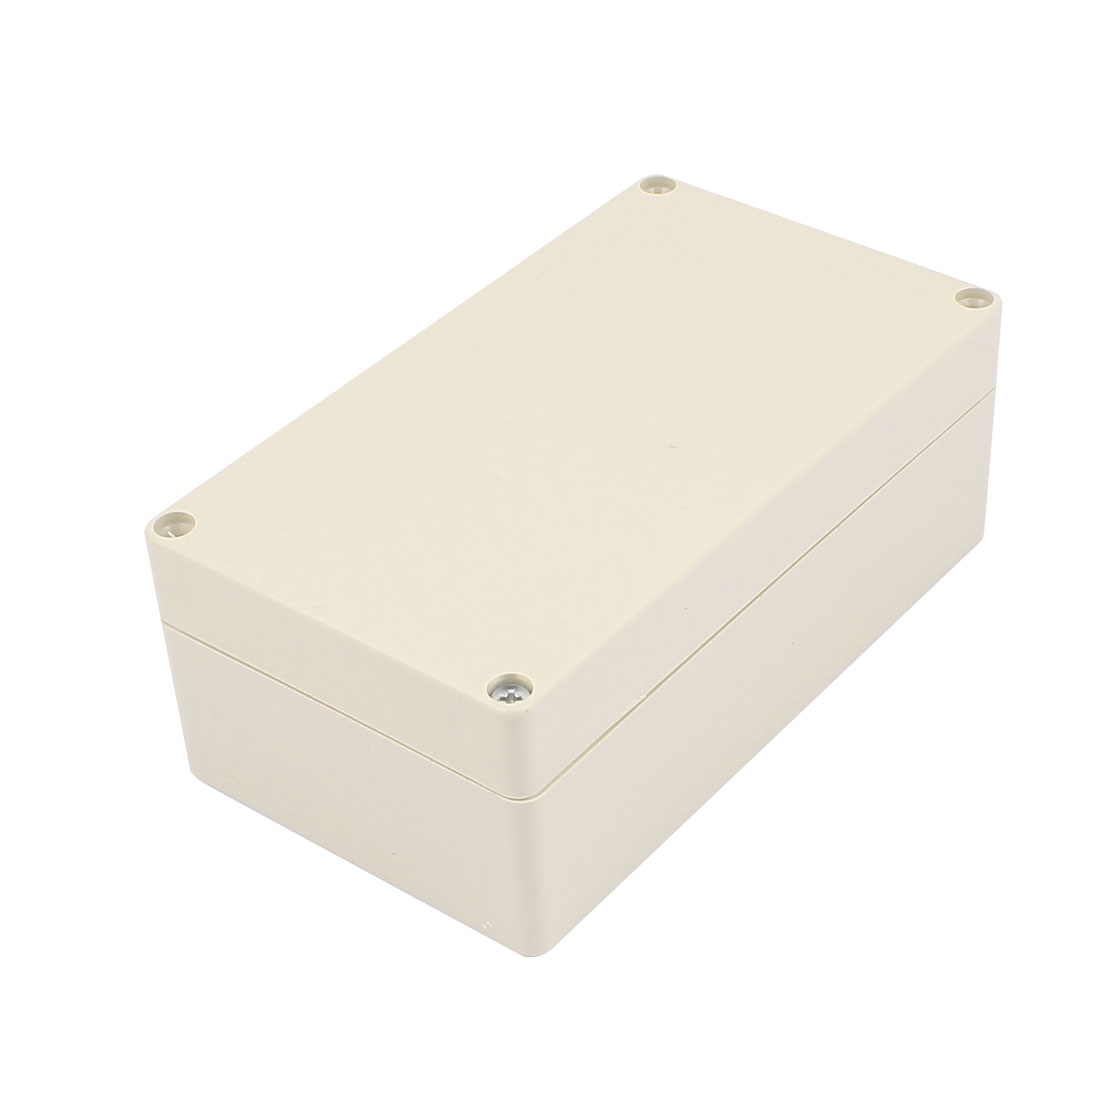 Dustproof IP65 Junction Box DIY Terminal Connect Enclosure Adaptable 150mm x 82mm x 52mm